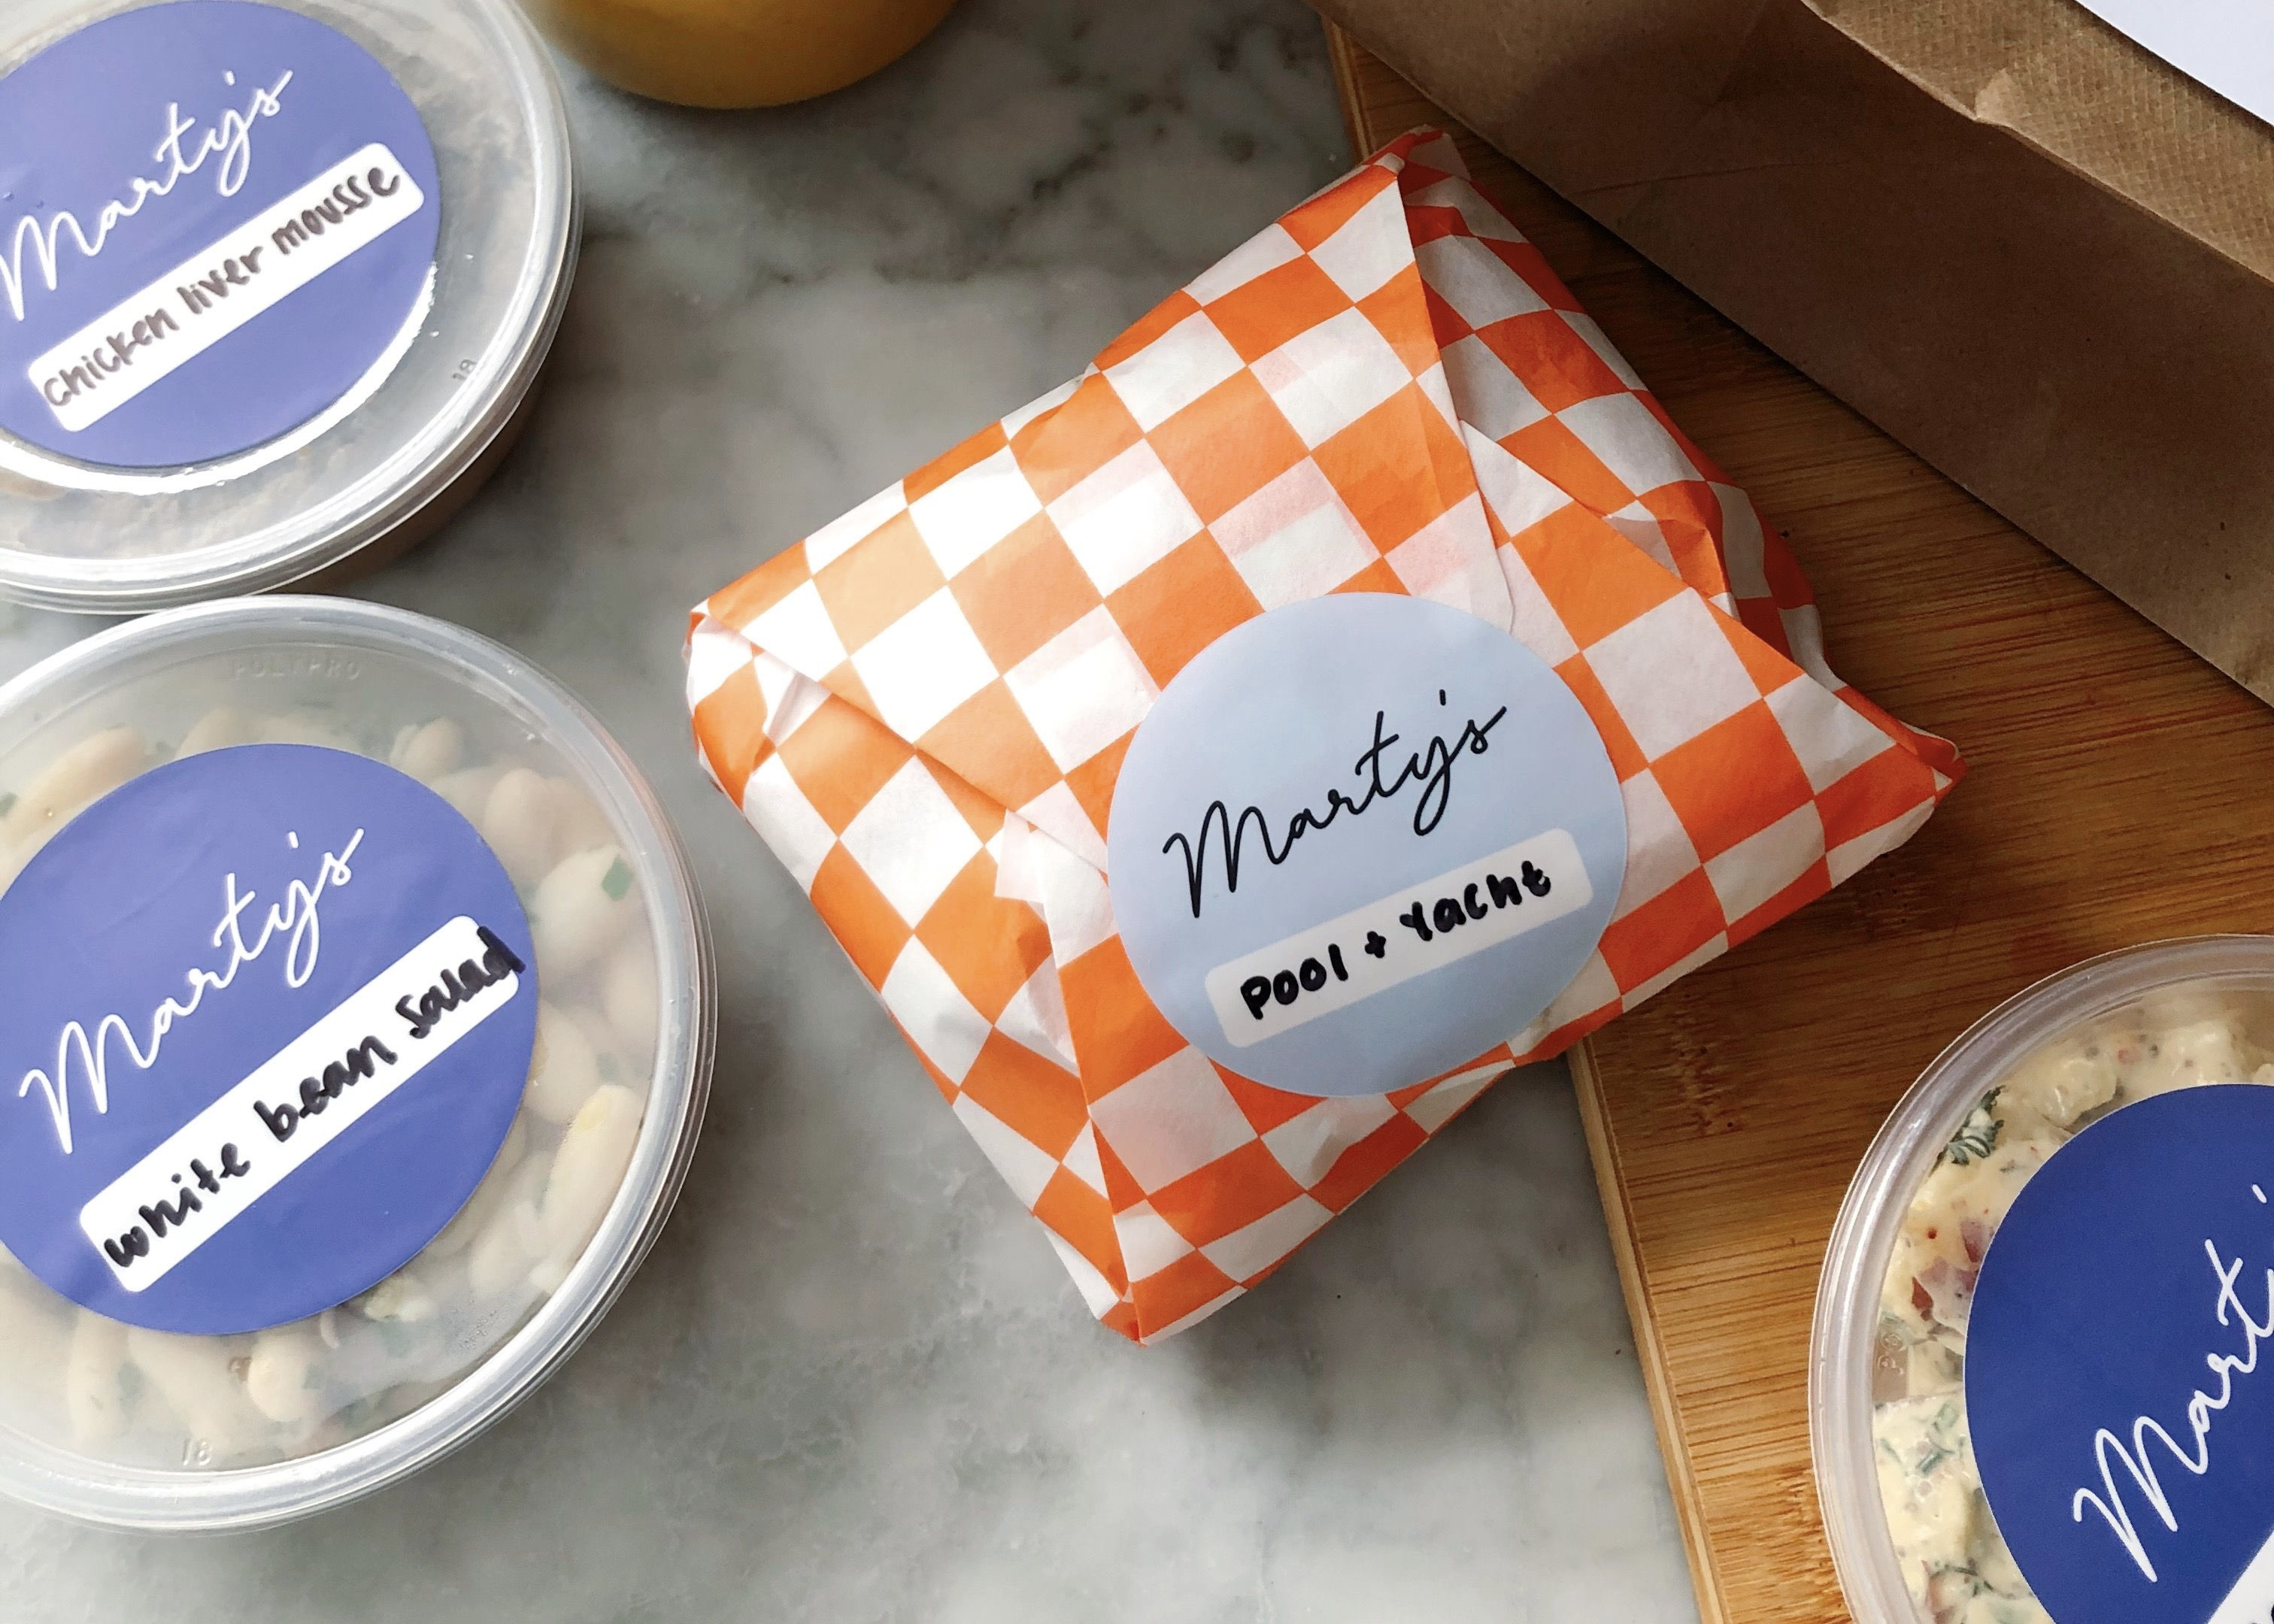 A sandwich wrapped in white and red checked wax paper with a Marty's sticker on it is flanked by deli containers of macaroni salad